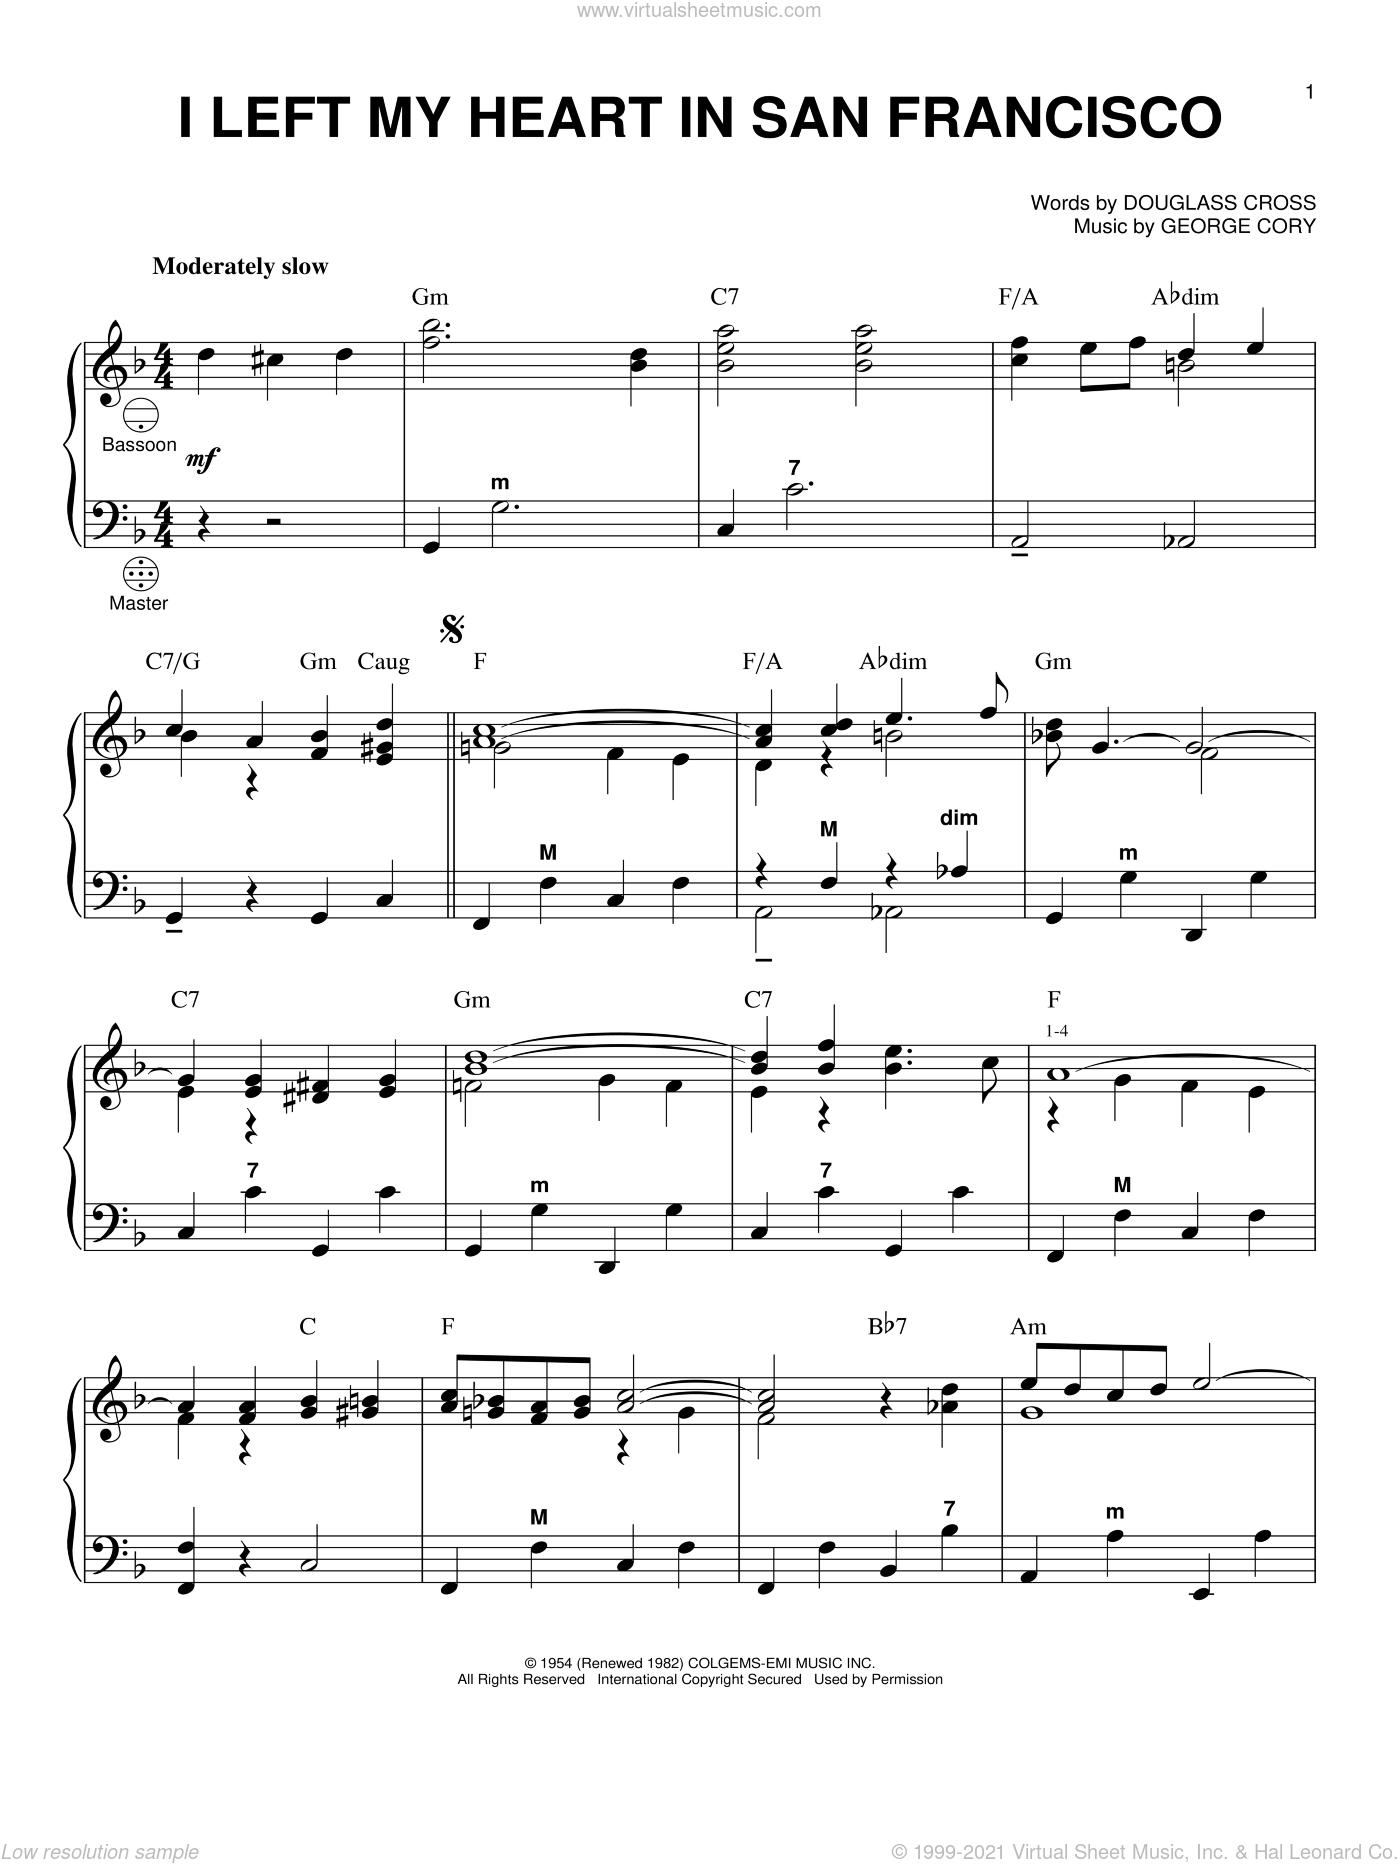 I Left My Heart In San Francisco sheet music for accordion by George Cory